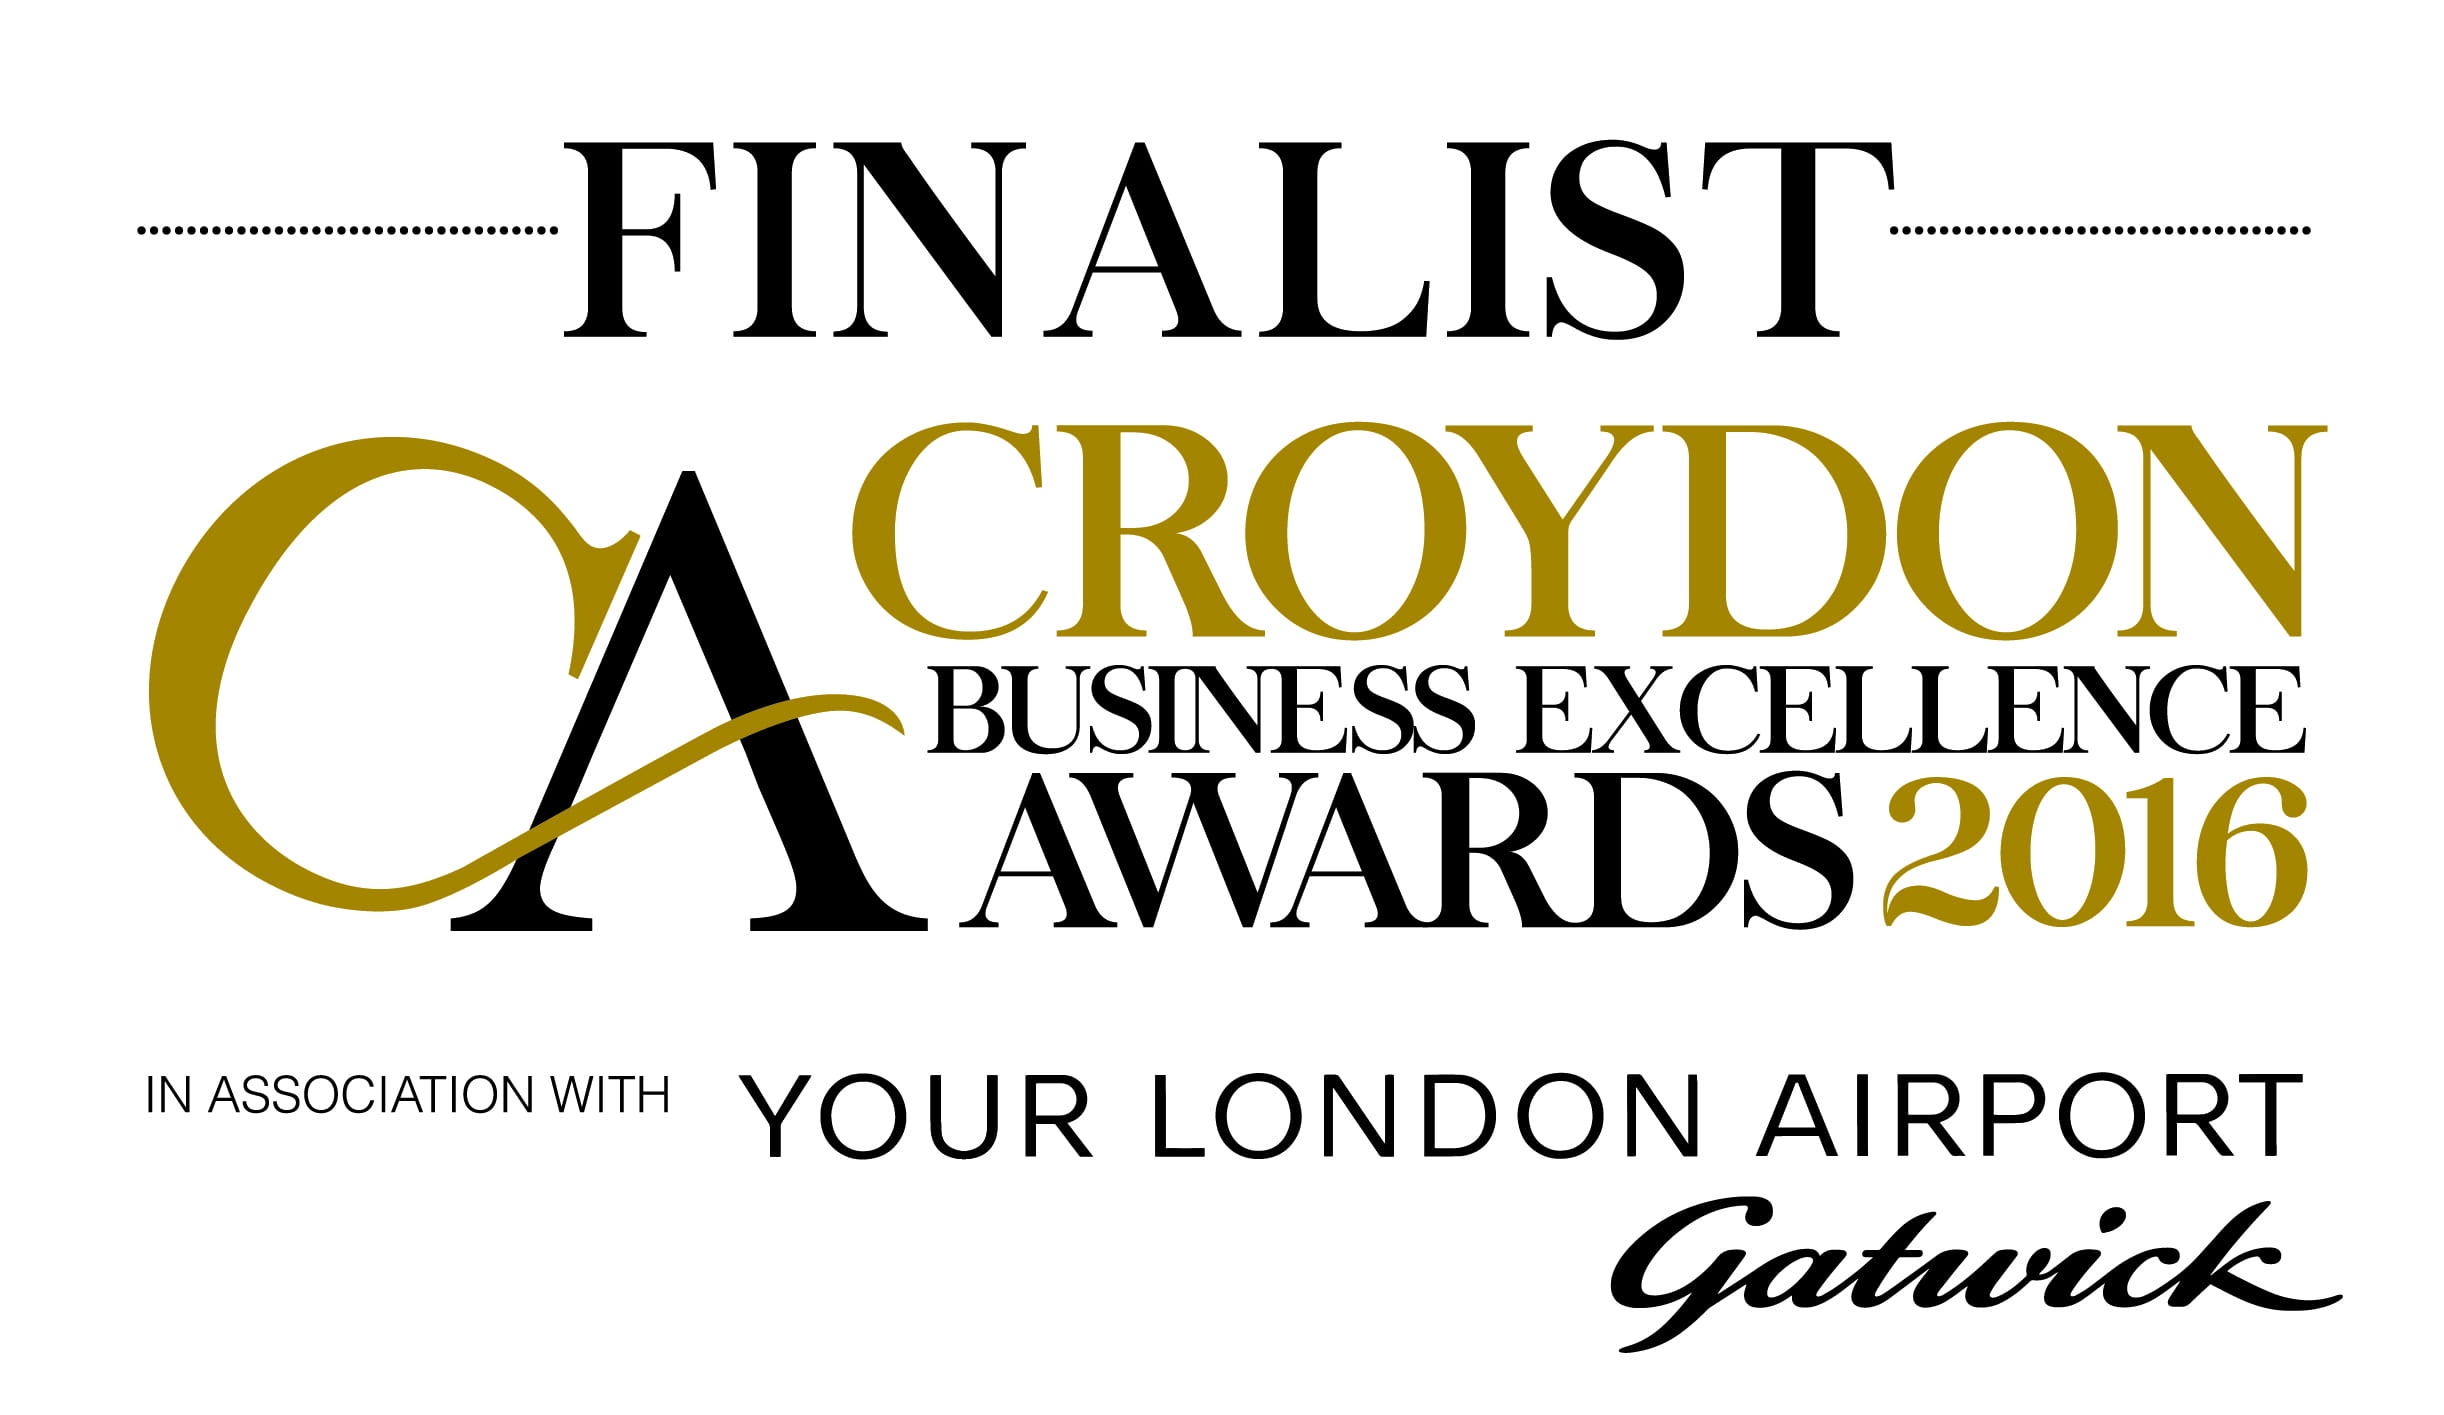 Branded Campervan Hire Croydon Business Awards